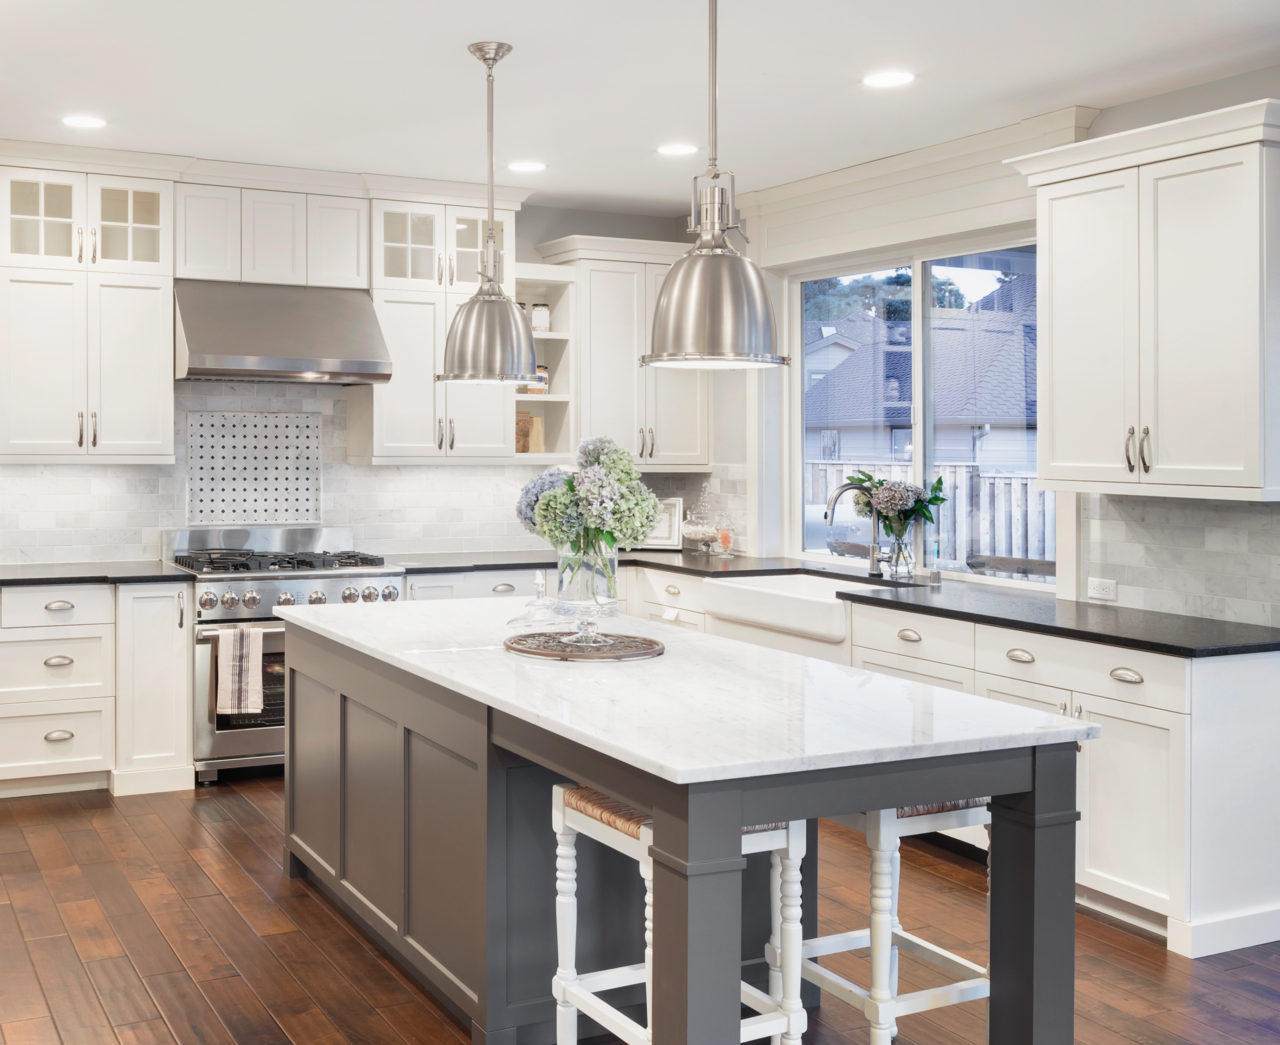 8 Steps For Starting Your Home Renovation